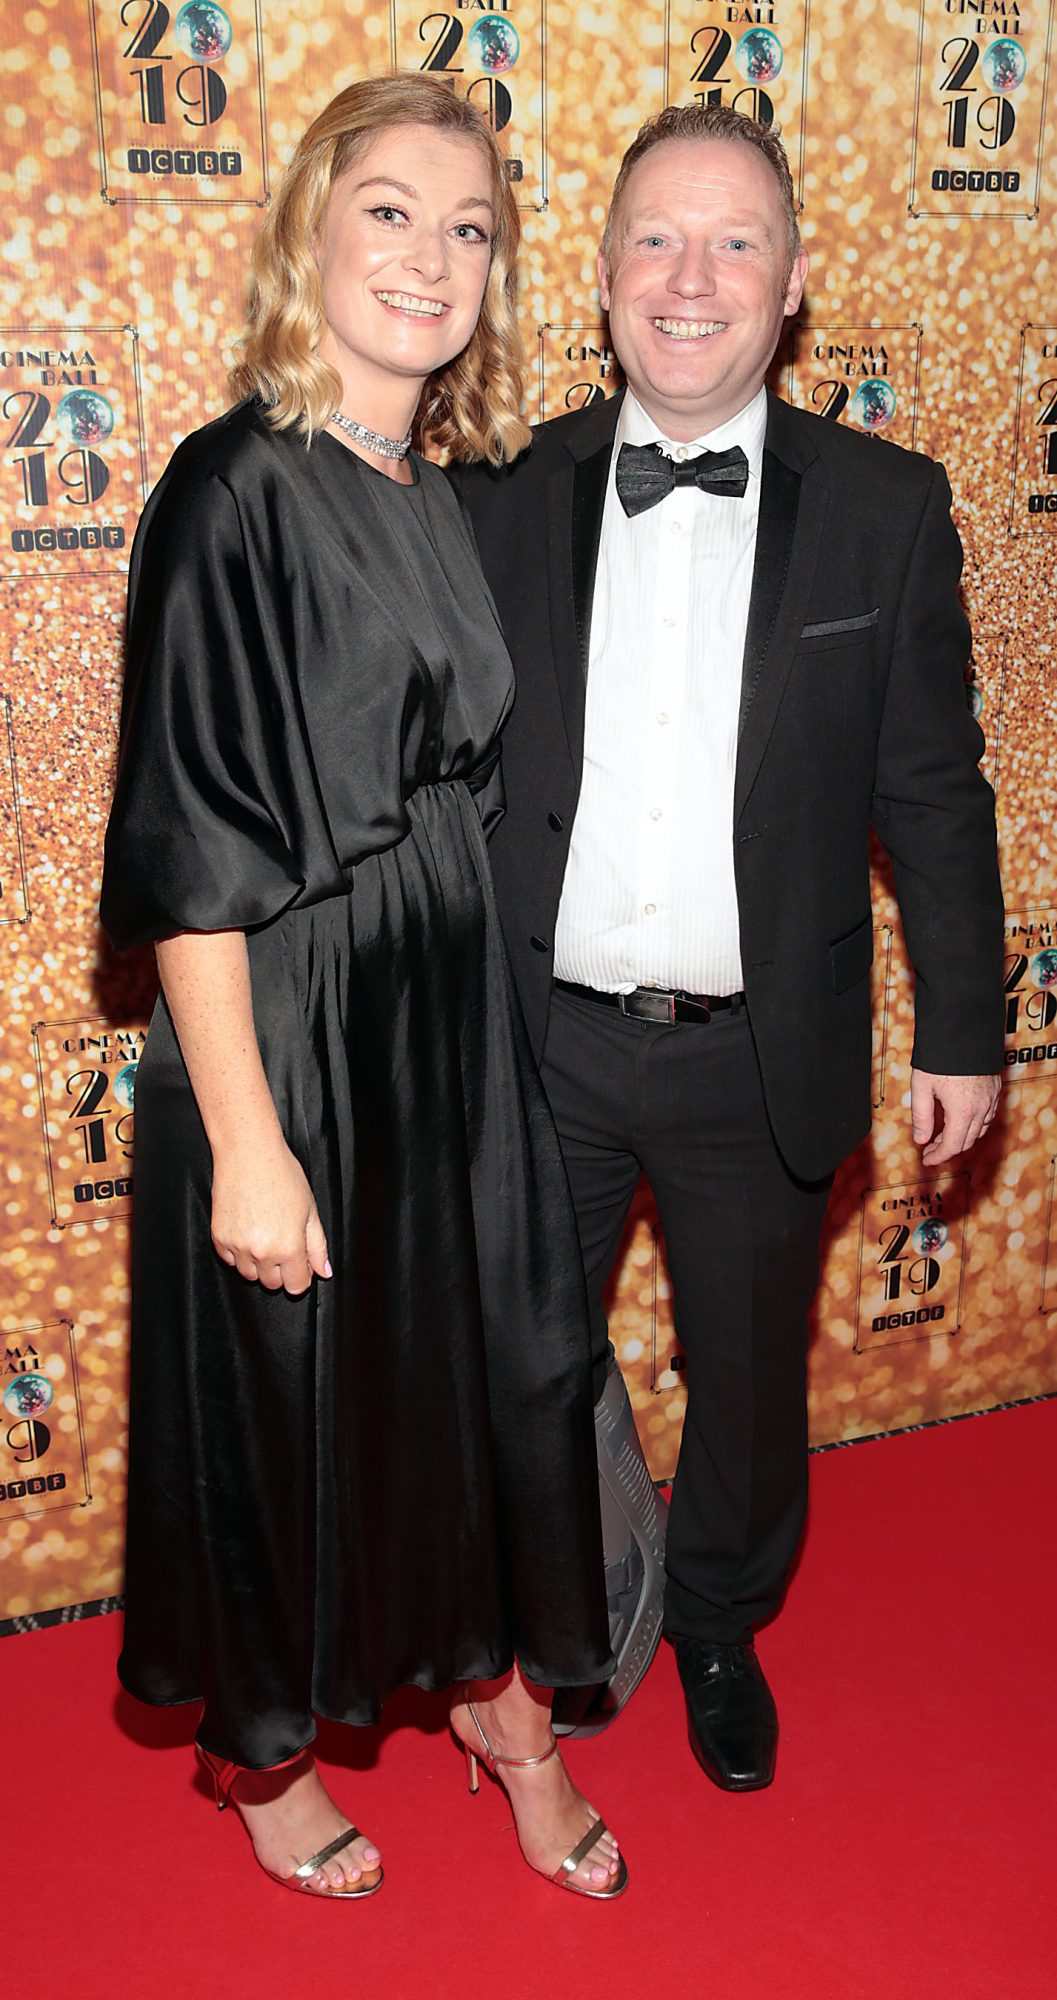 Aoife McCann and Rob Finn  pictured at the Irish Cinema Ball 2019 in aid of the Irish Cinematograph Trade Benevolent Fund (ICTBF ) at The Shelbourne Hotel, Dublin This year's theme was the iconic 'Studio 54'. Pic: Brian McEvoy.